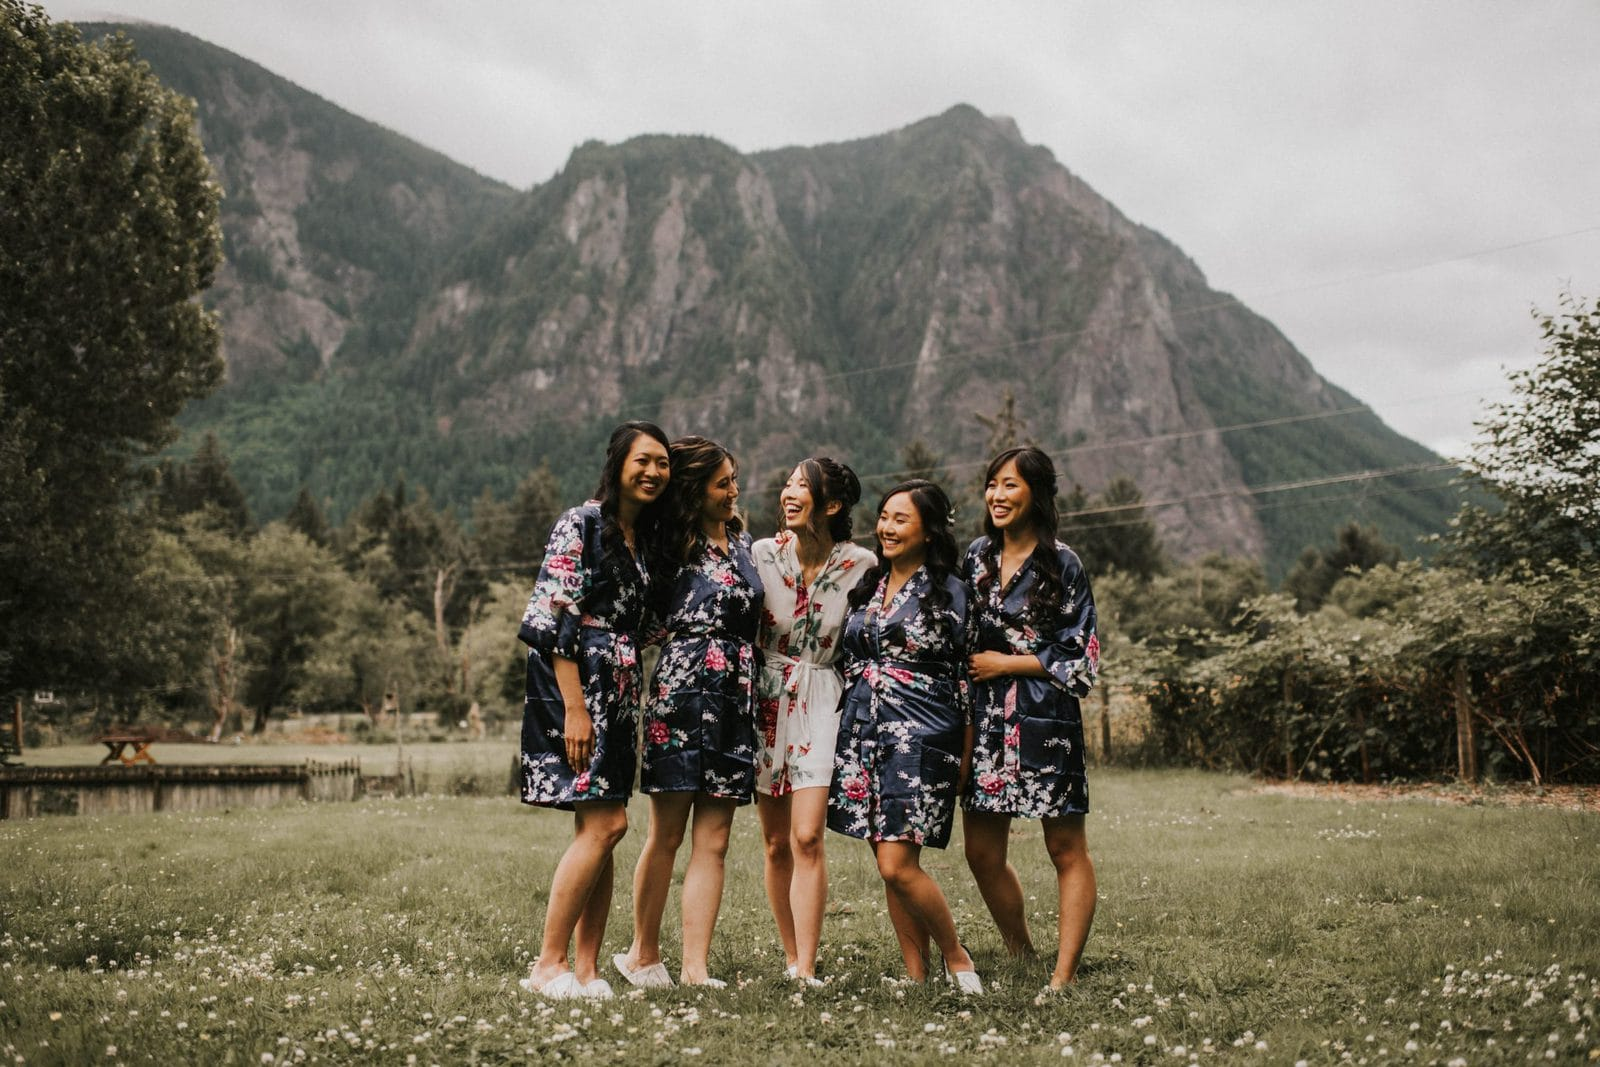 bridesmaids posing in front of mountains wearing robes